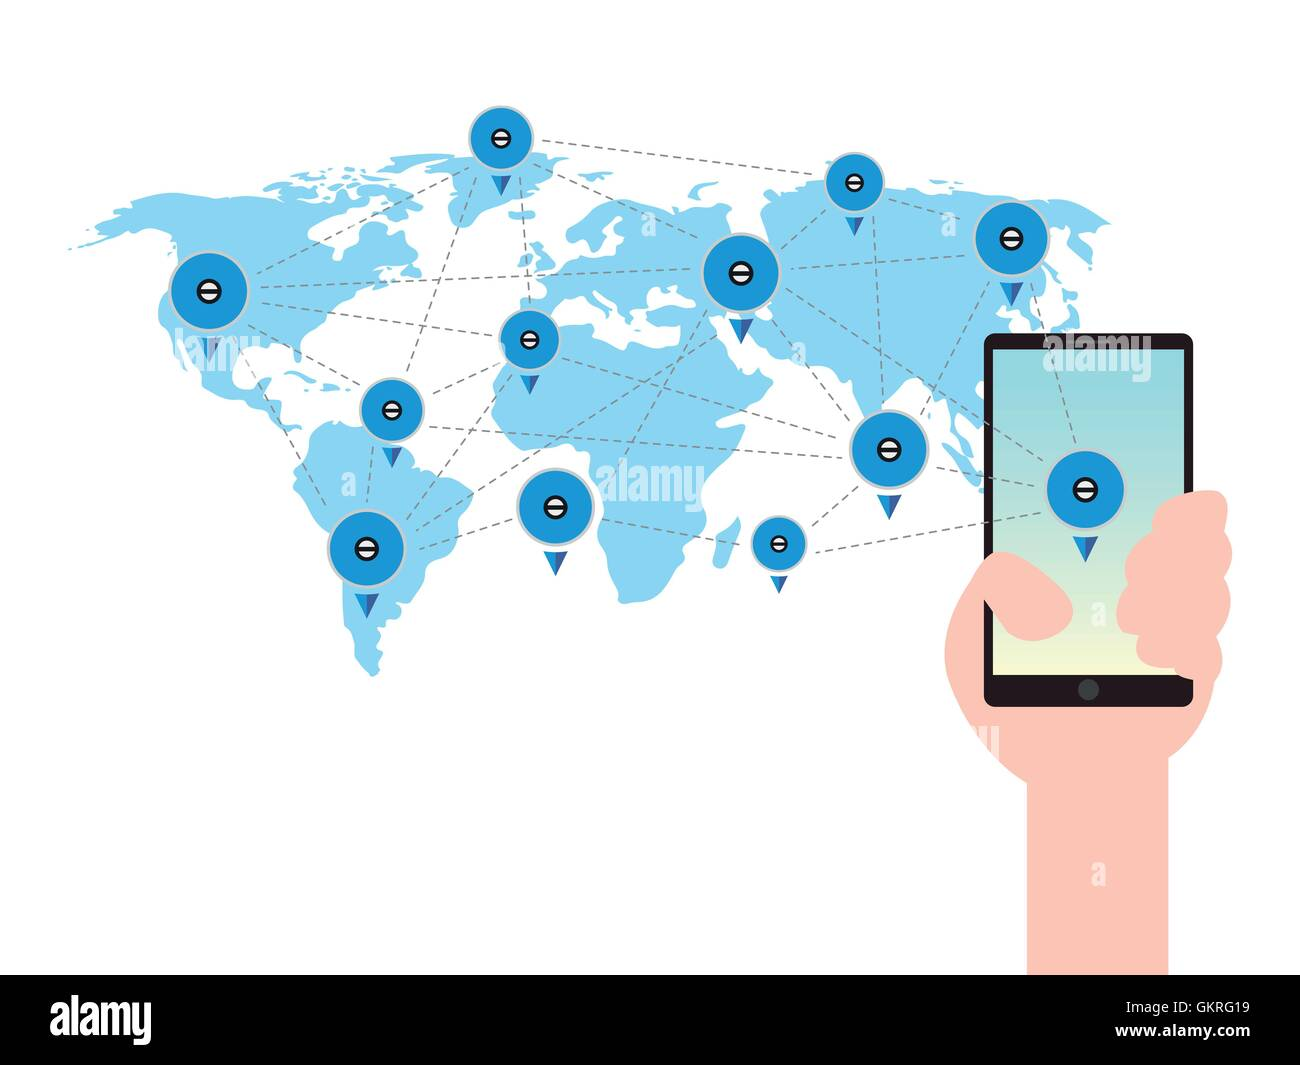 Mobile phone in a hand world map global business communication stock mobile phone in a hand world map global business communication technology concept gumiabroncs Images